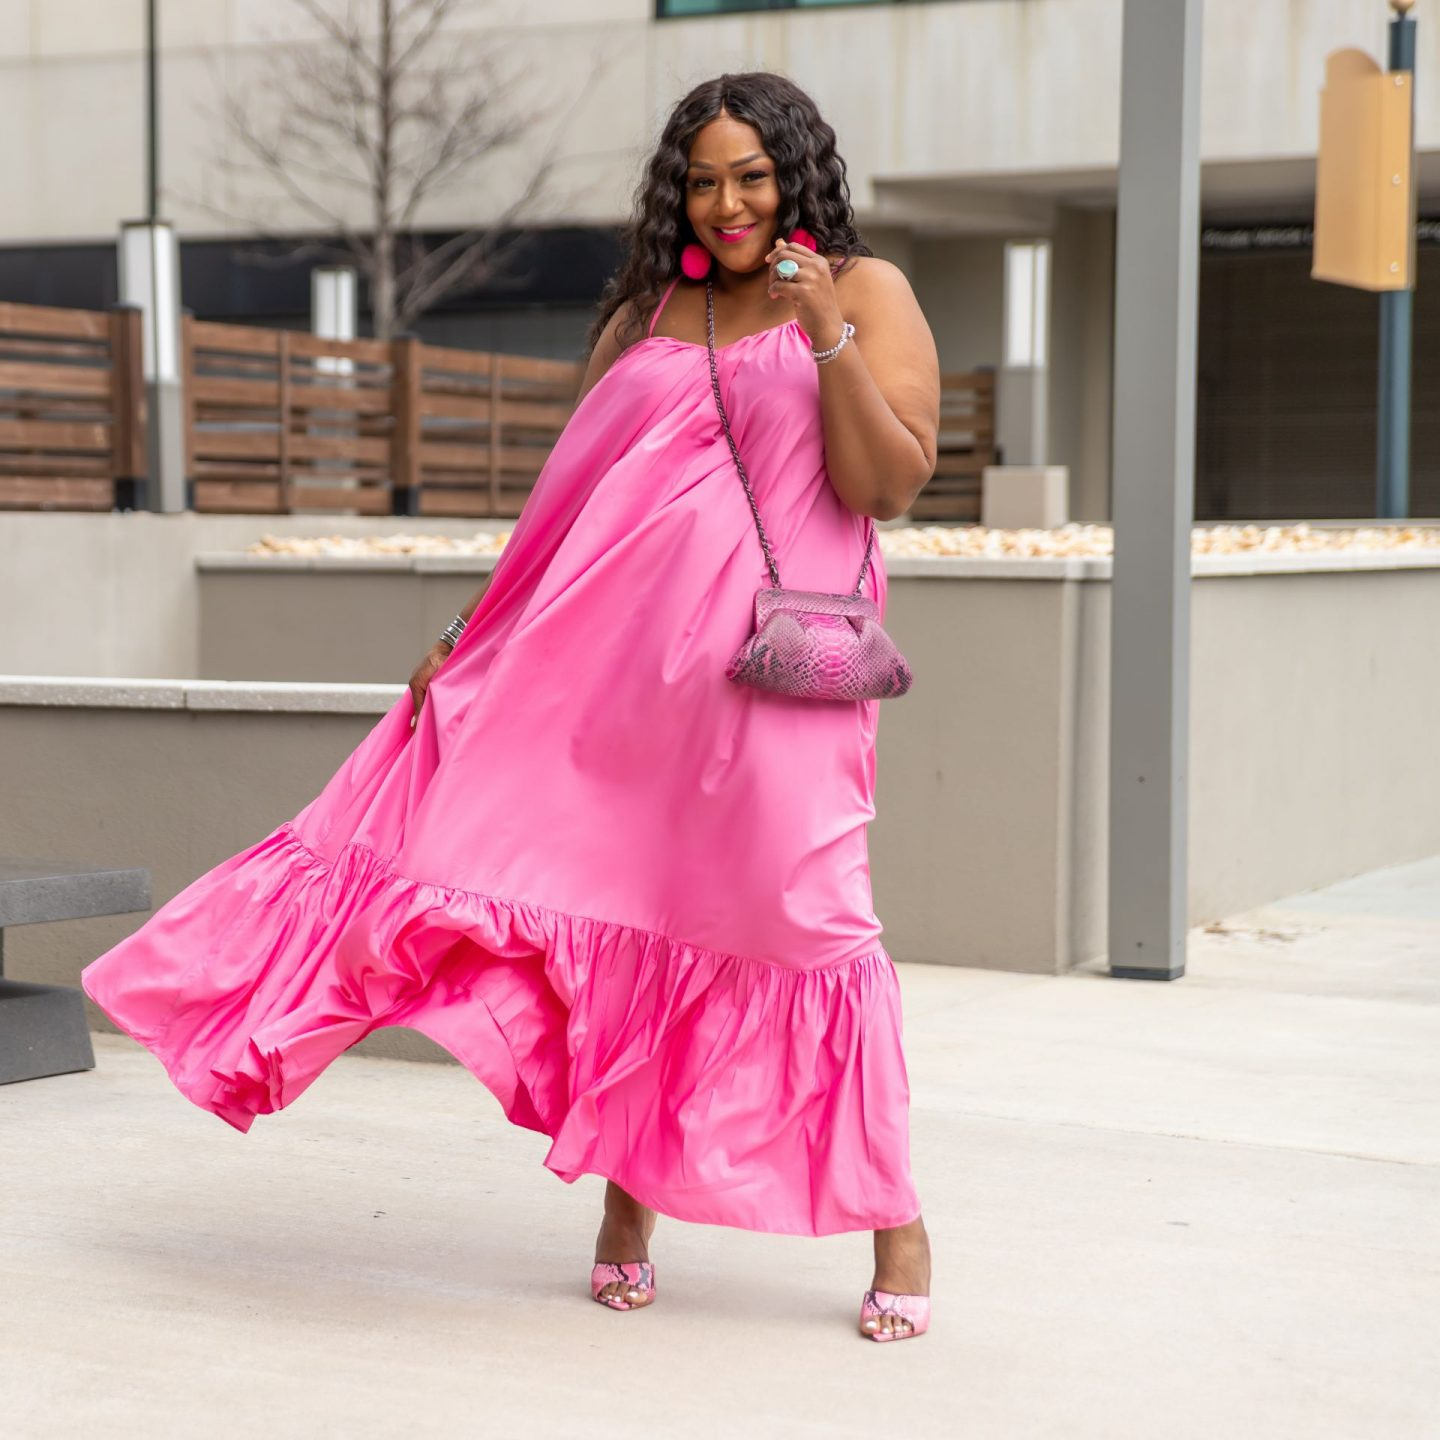 Blogger Nikki Free in flowing pink maxi sundress